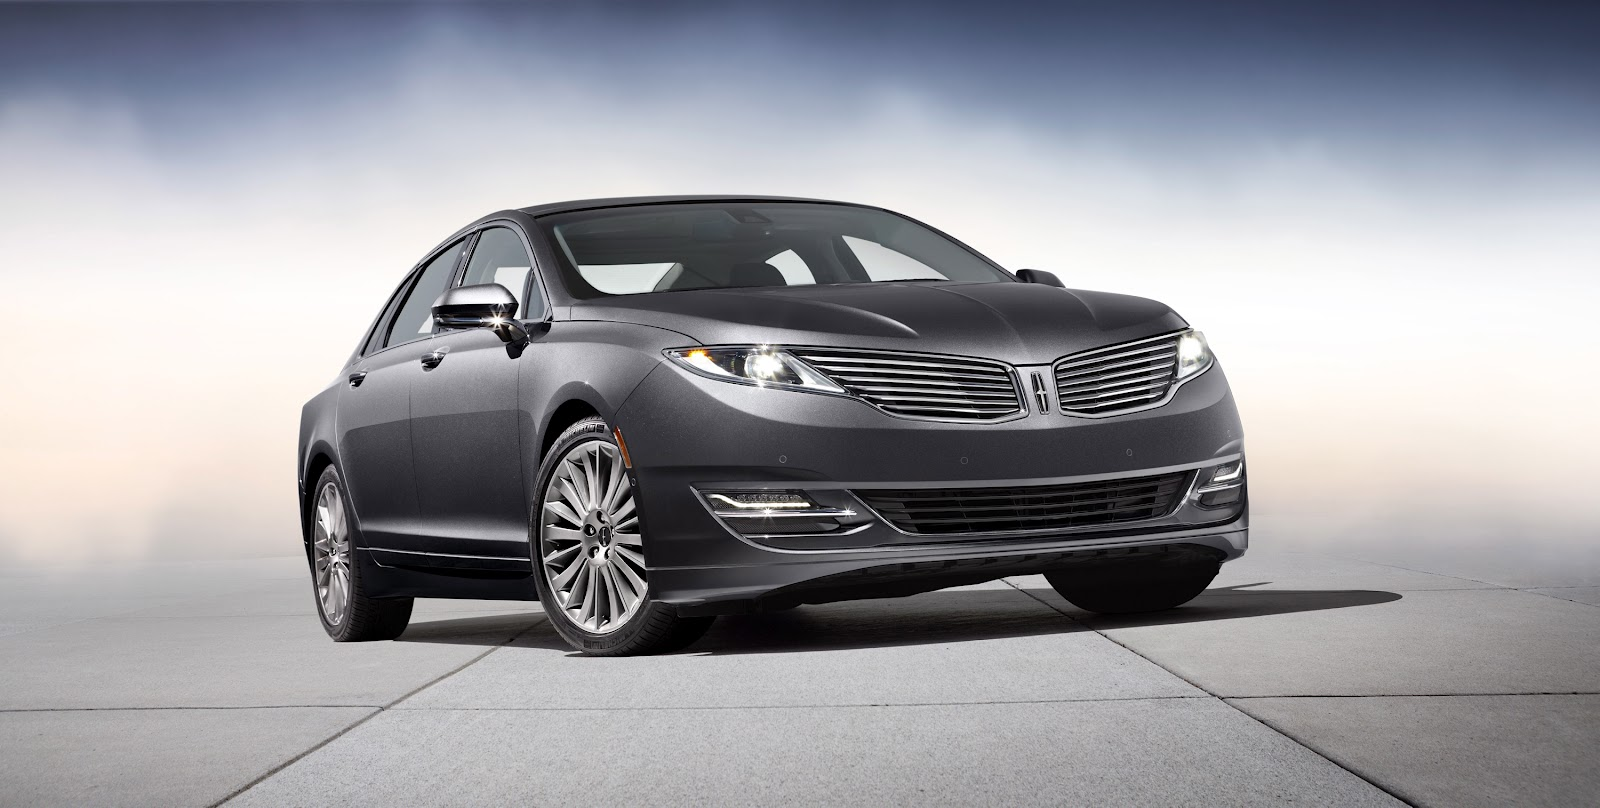 2016 - [Lincoln] MKZ - Page 2 2013+lincoln+mkz+1